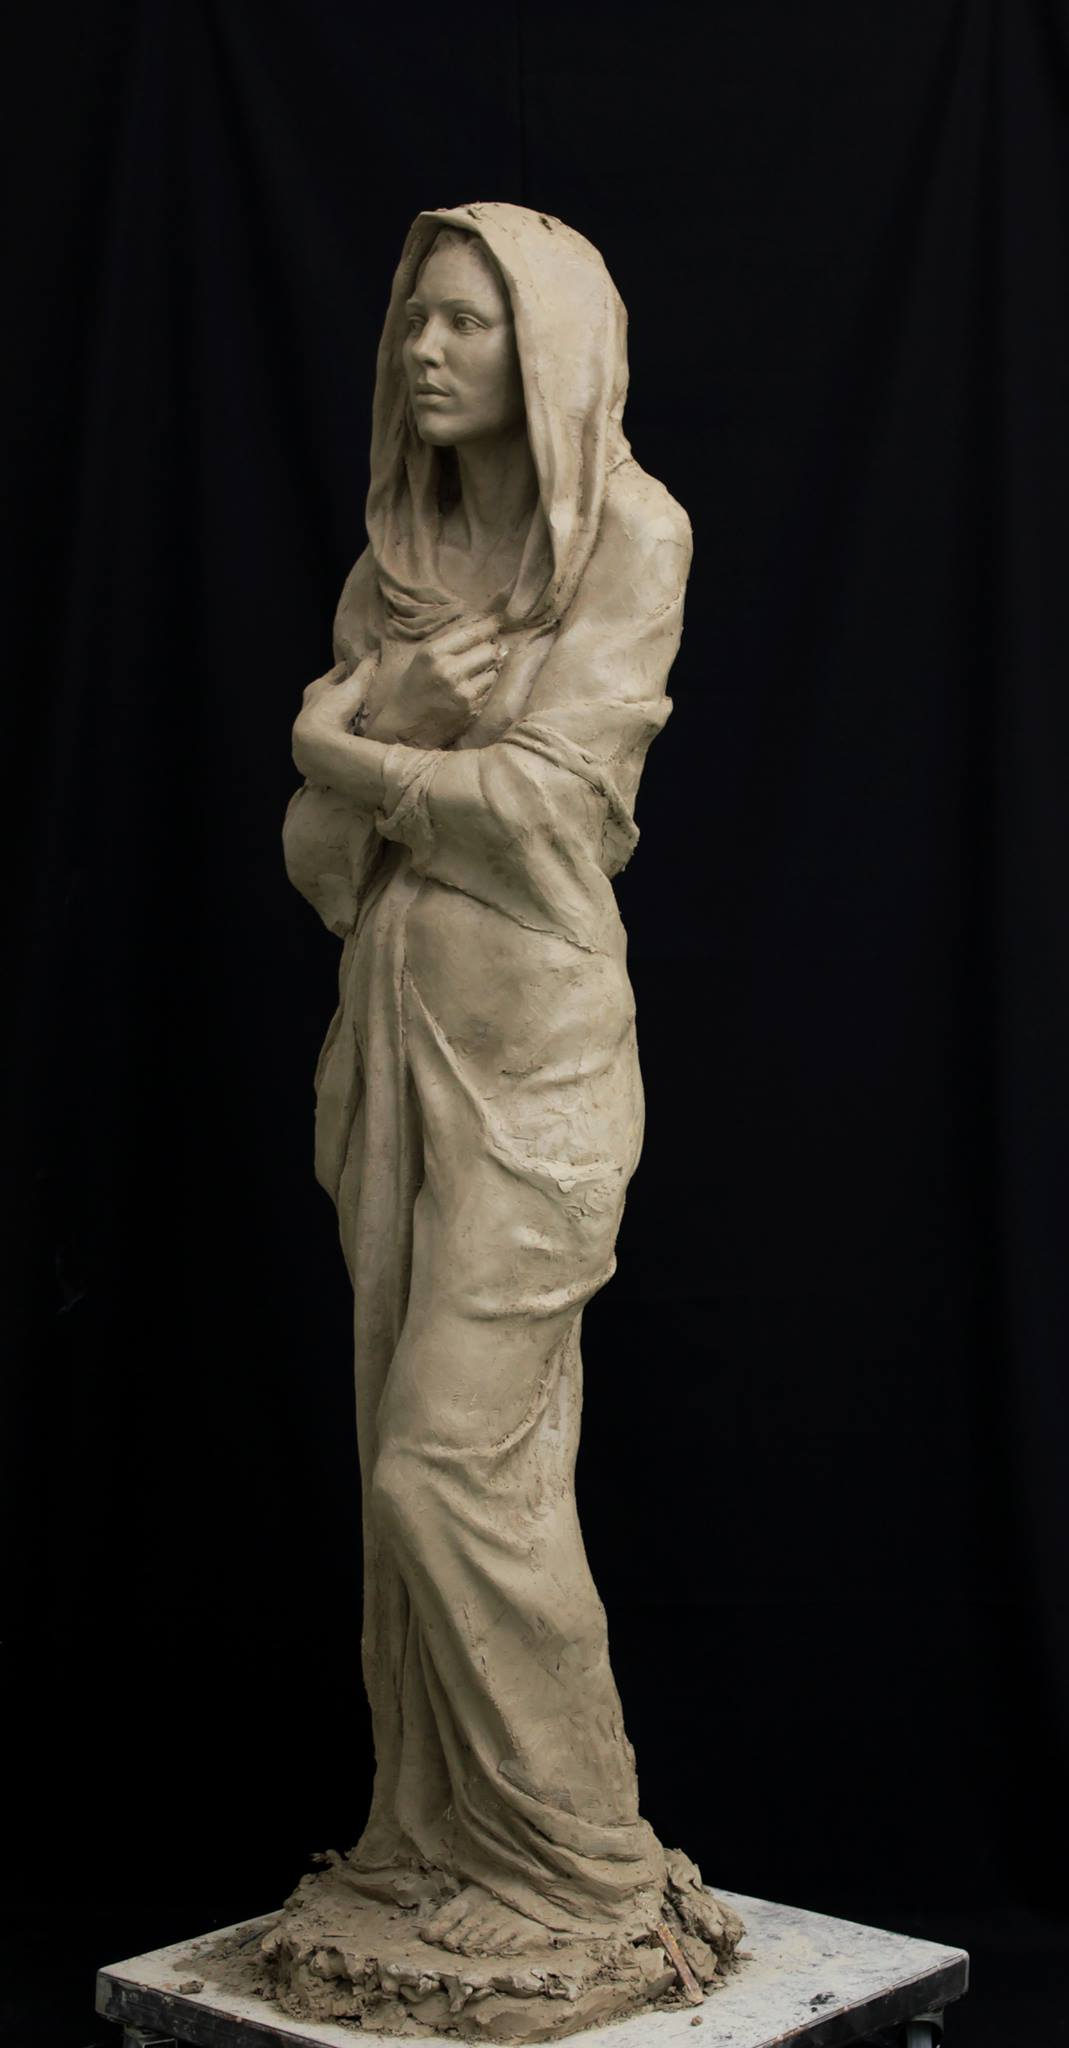 finished clay, life-size, 2014